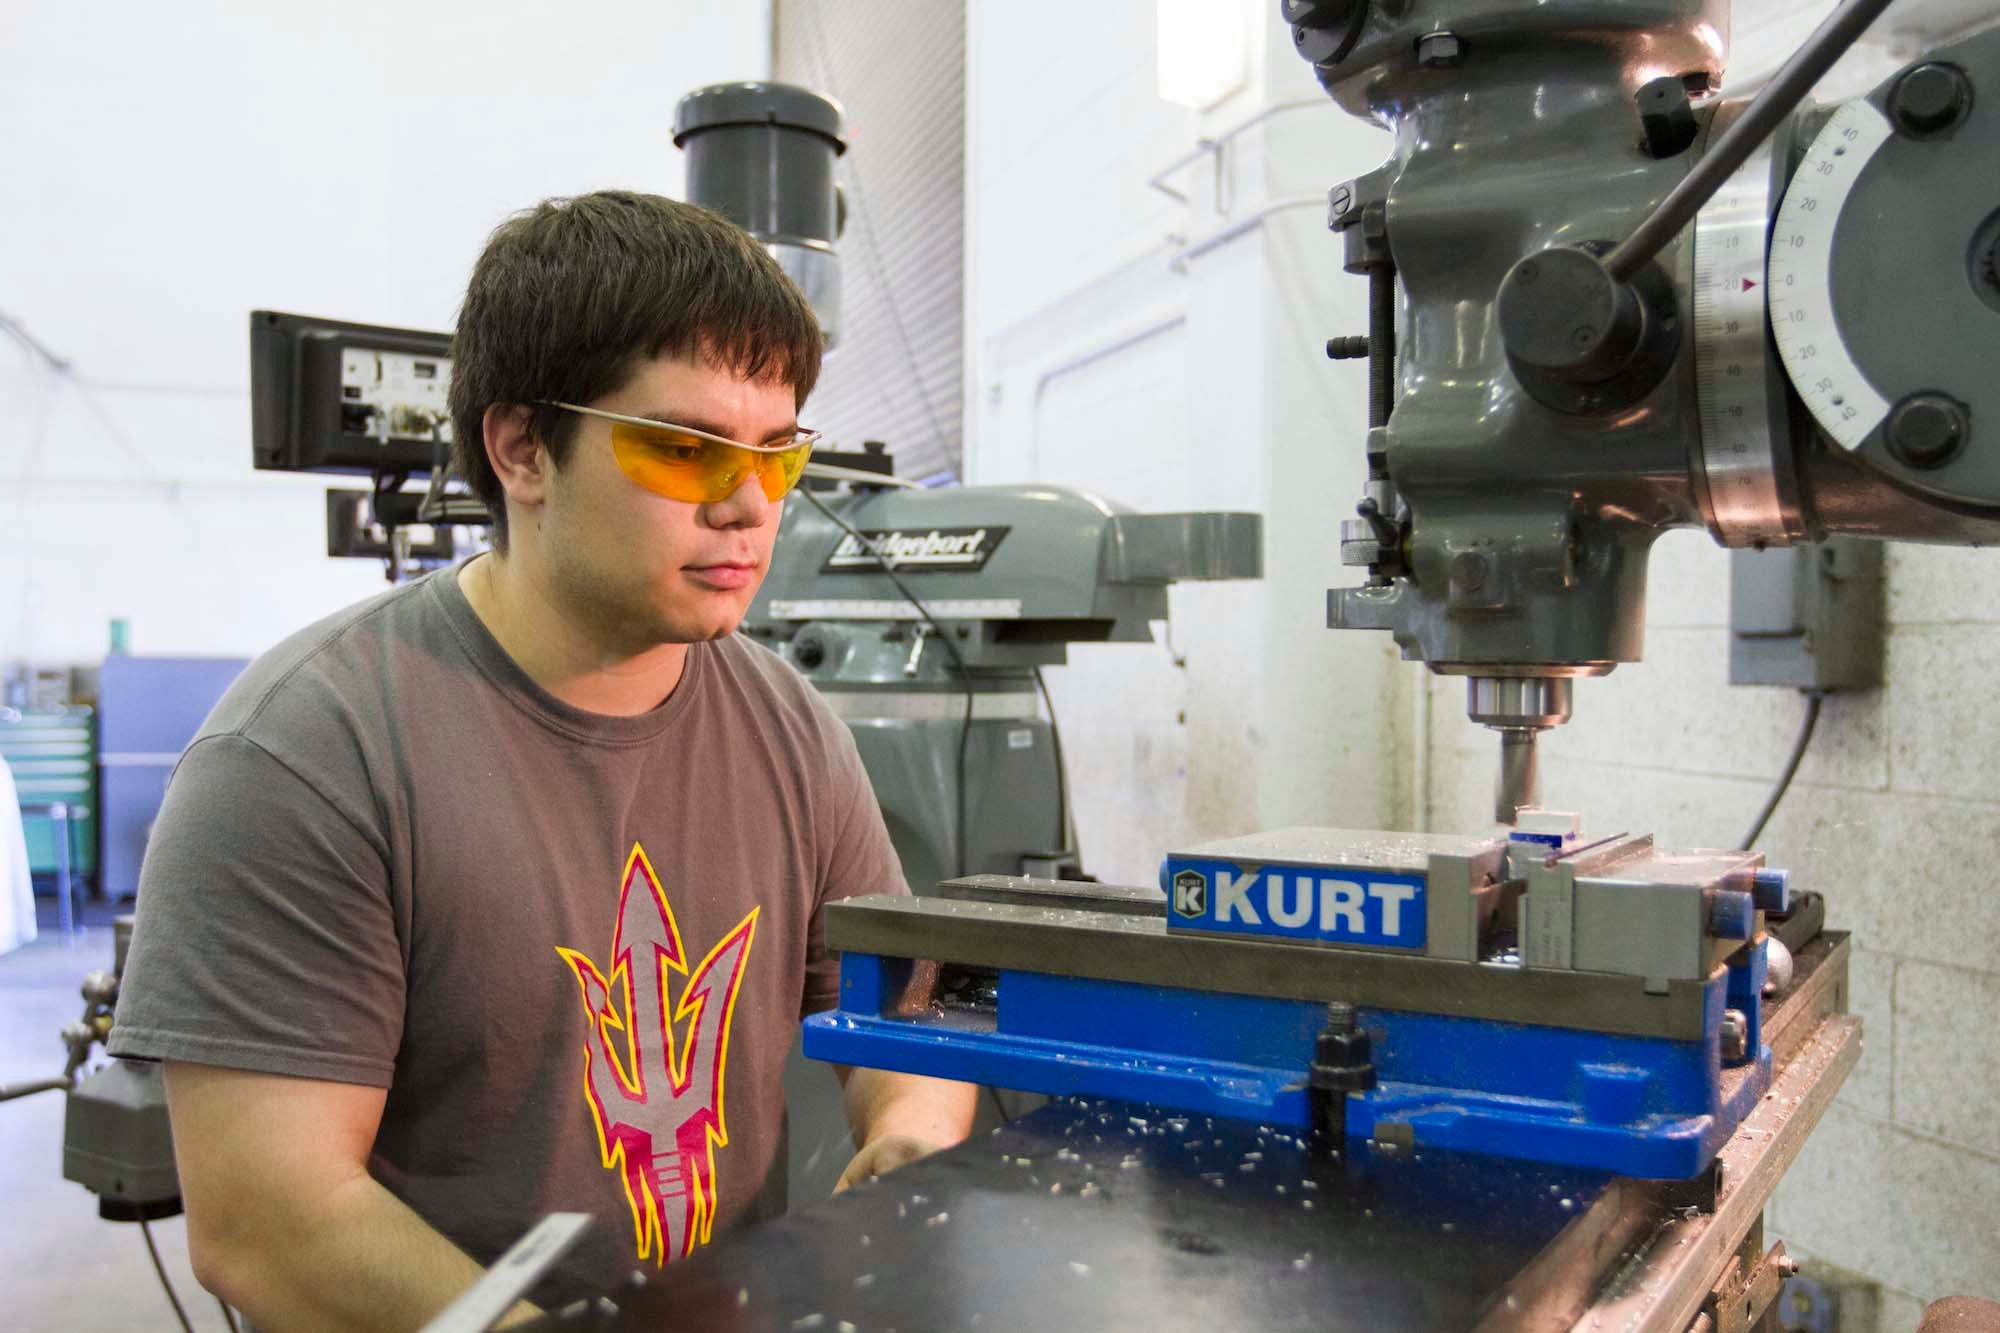 A manufacturing engineering student works in a lab